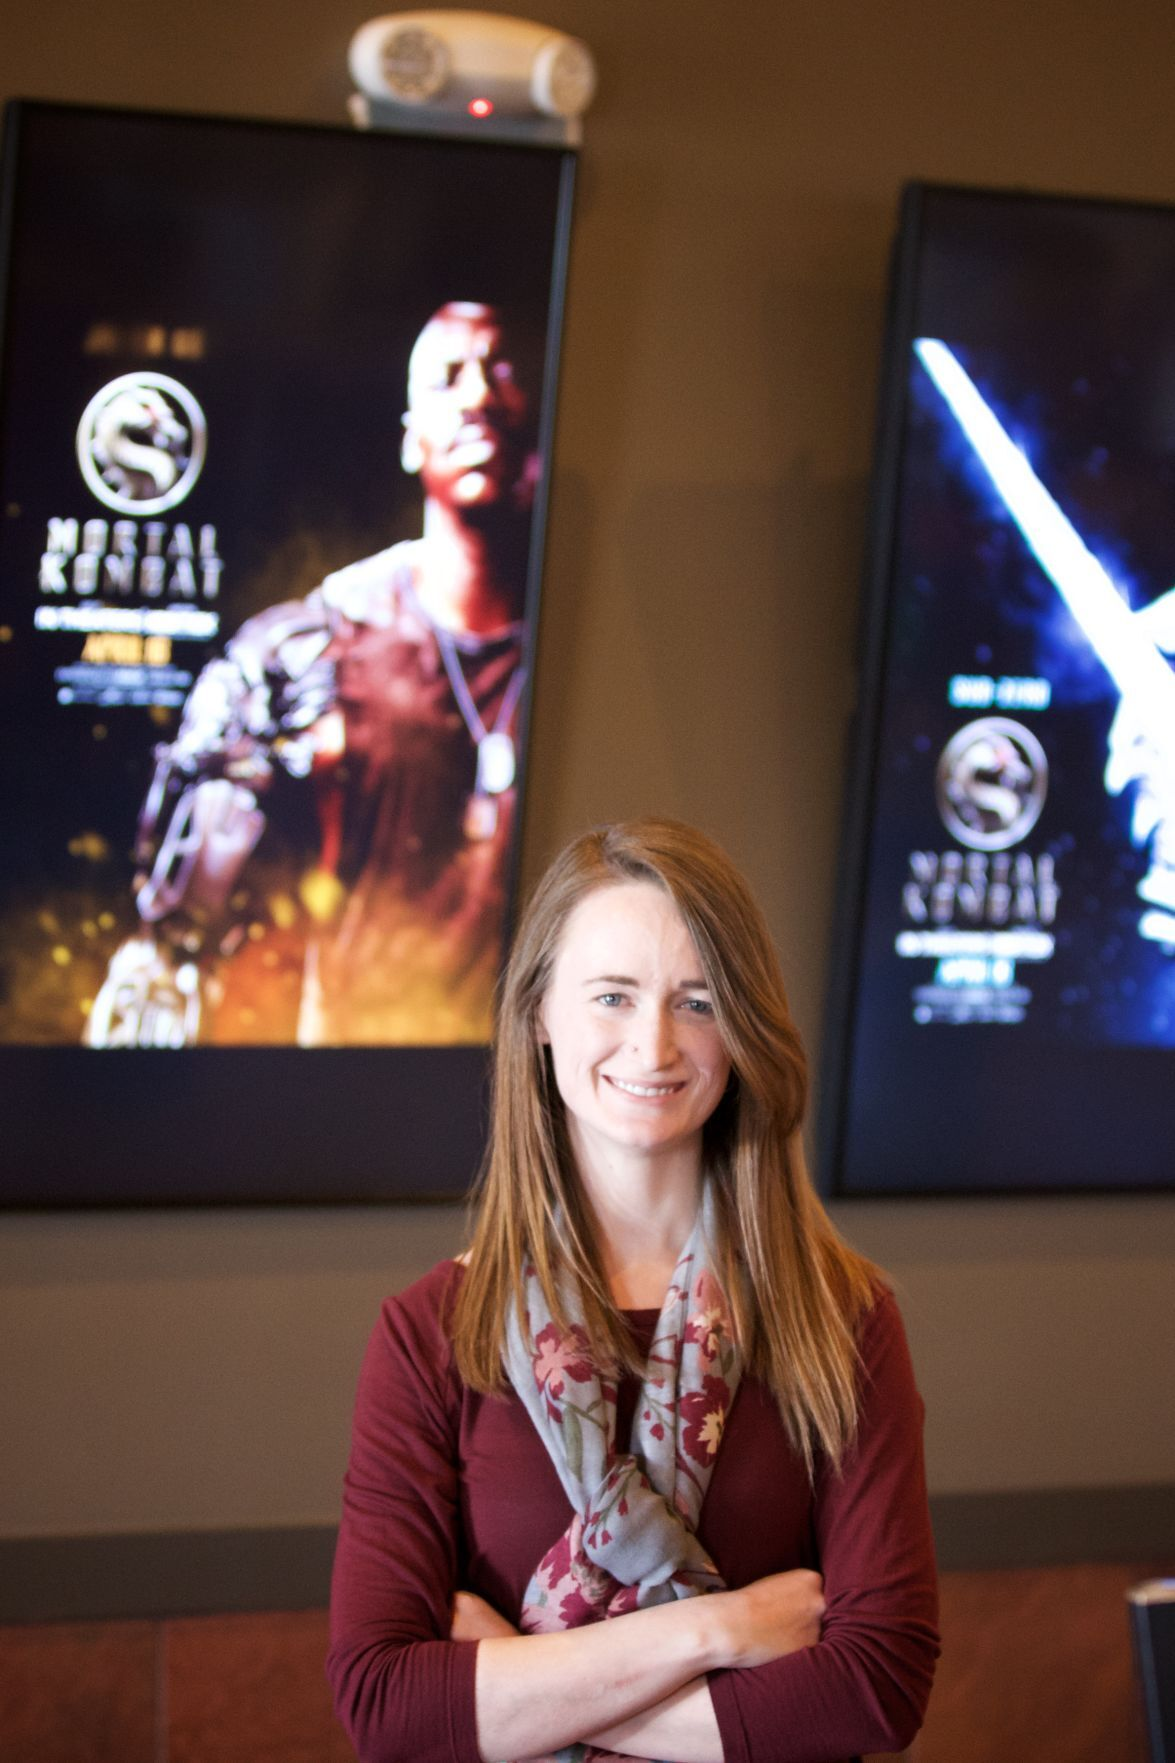 Alainie Crawford with movie posters